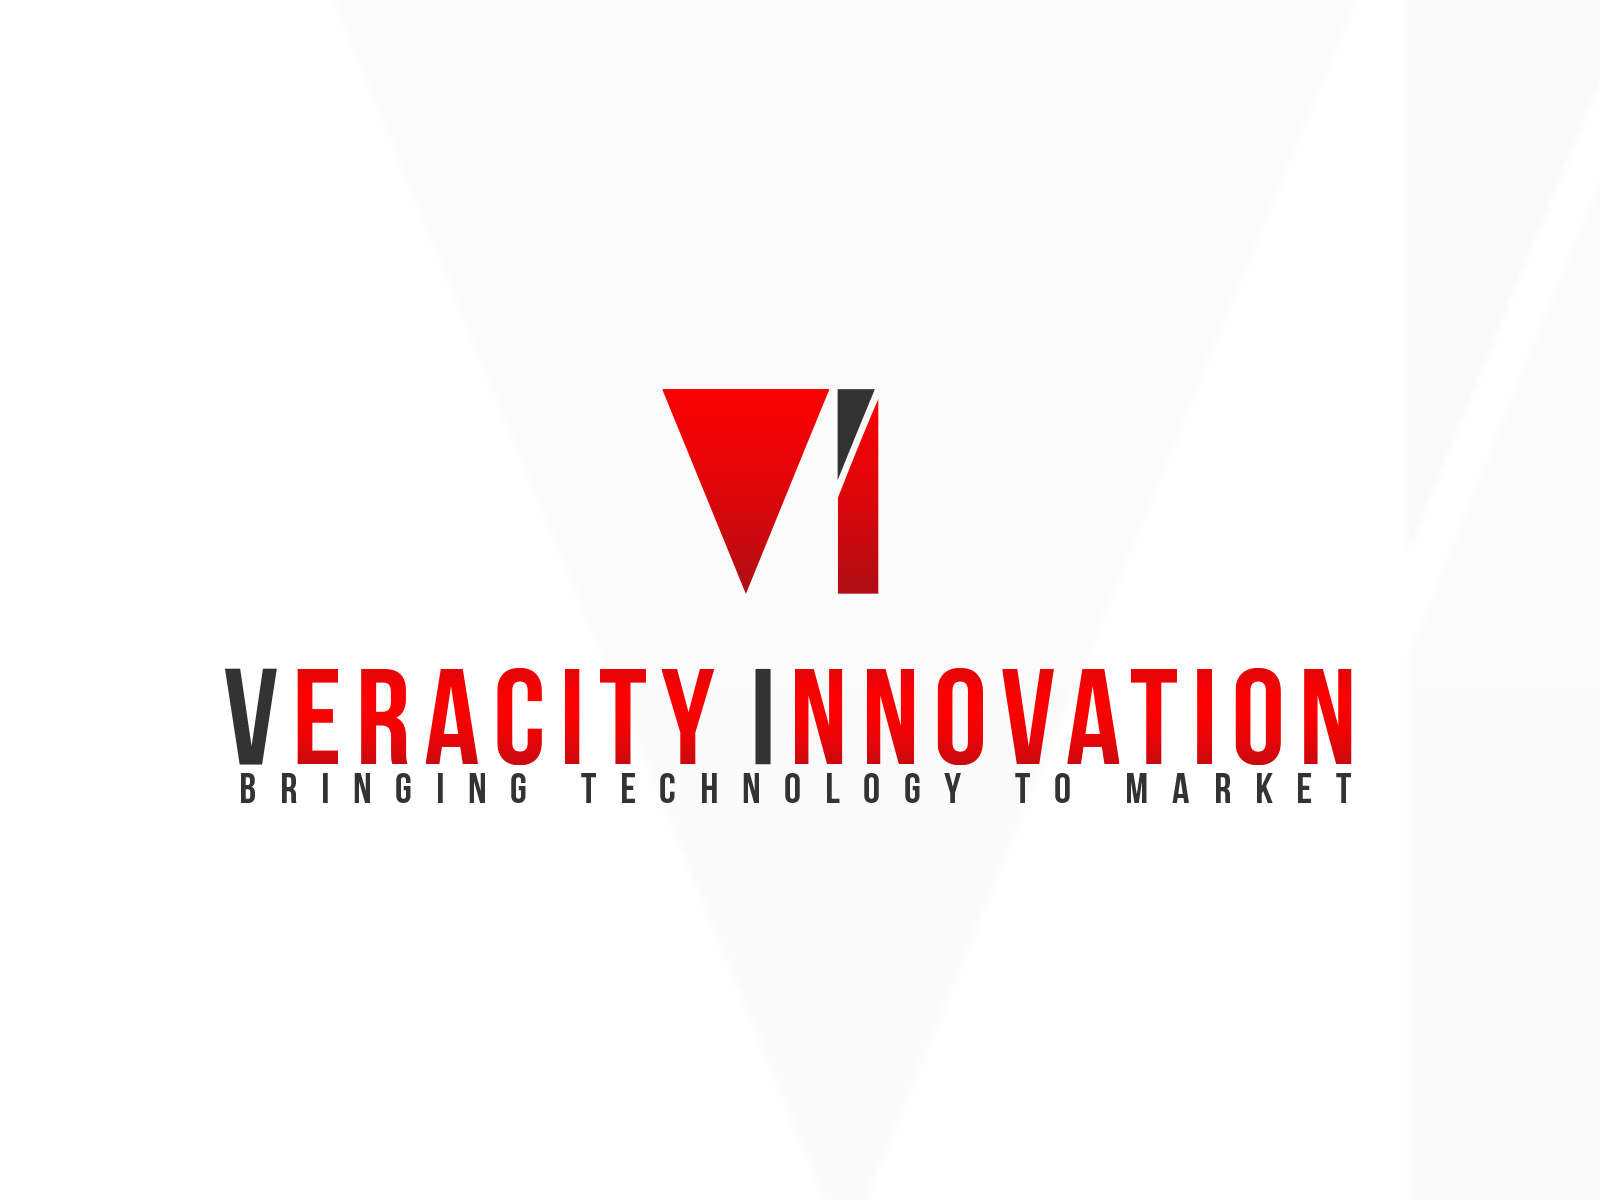 Logo Design by olii - Entry No. 308 in the Logo Design Contest Creative Logo Design for Veracity Innovation, LLC.